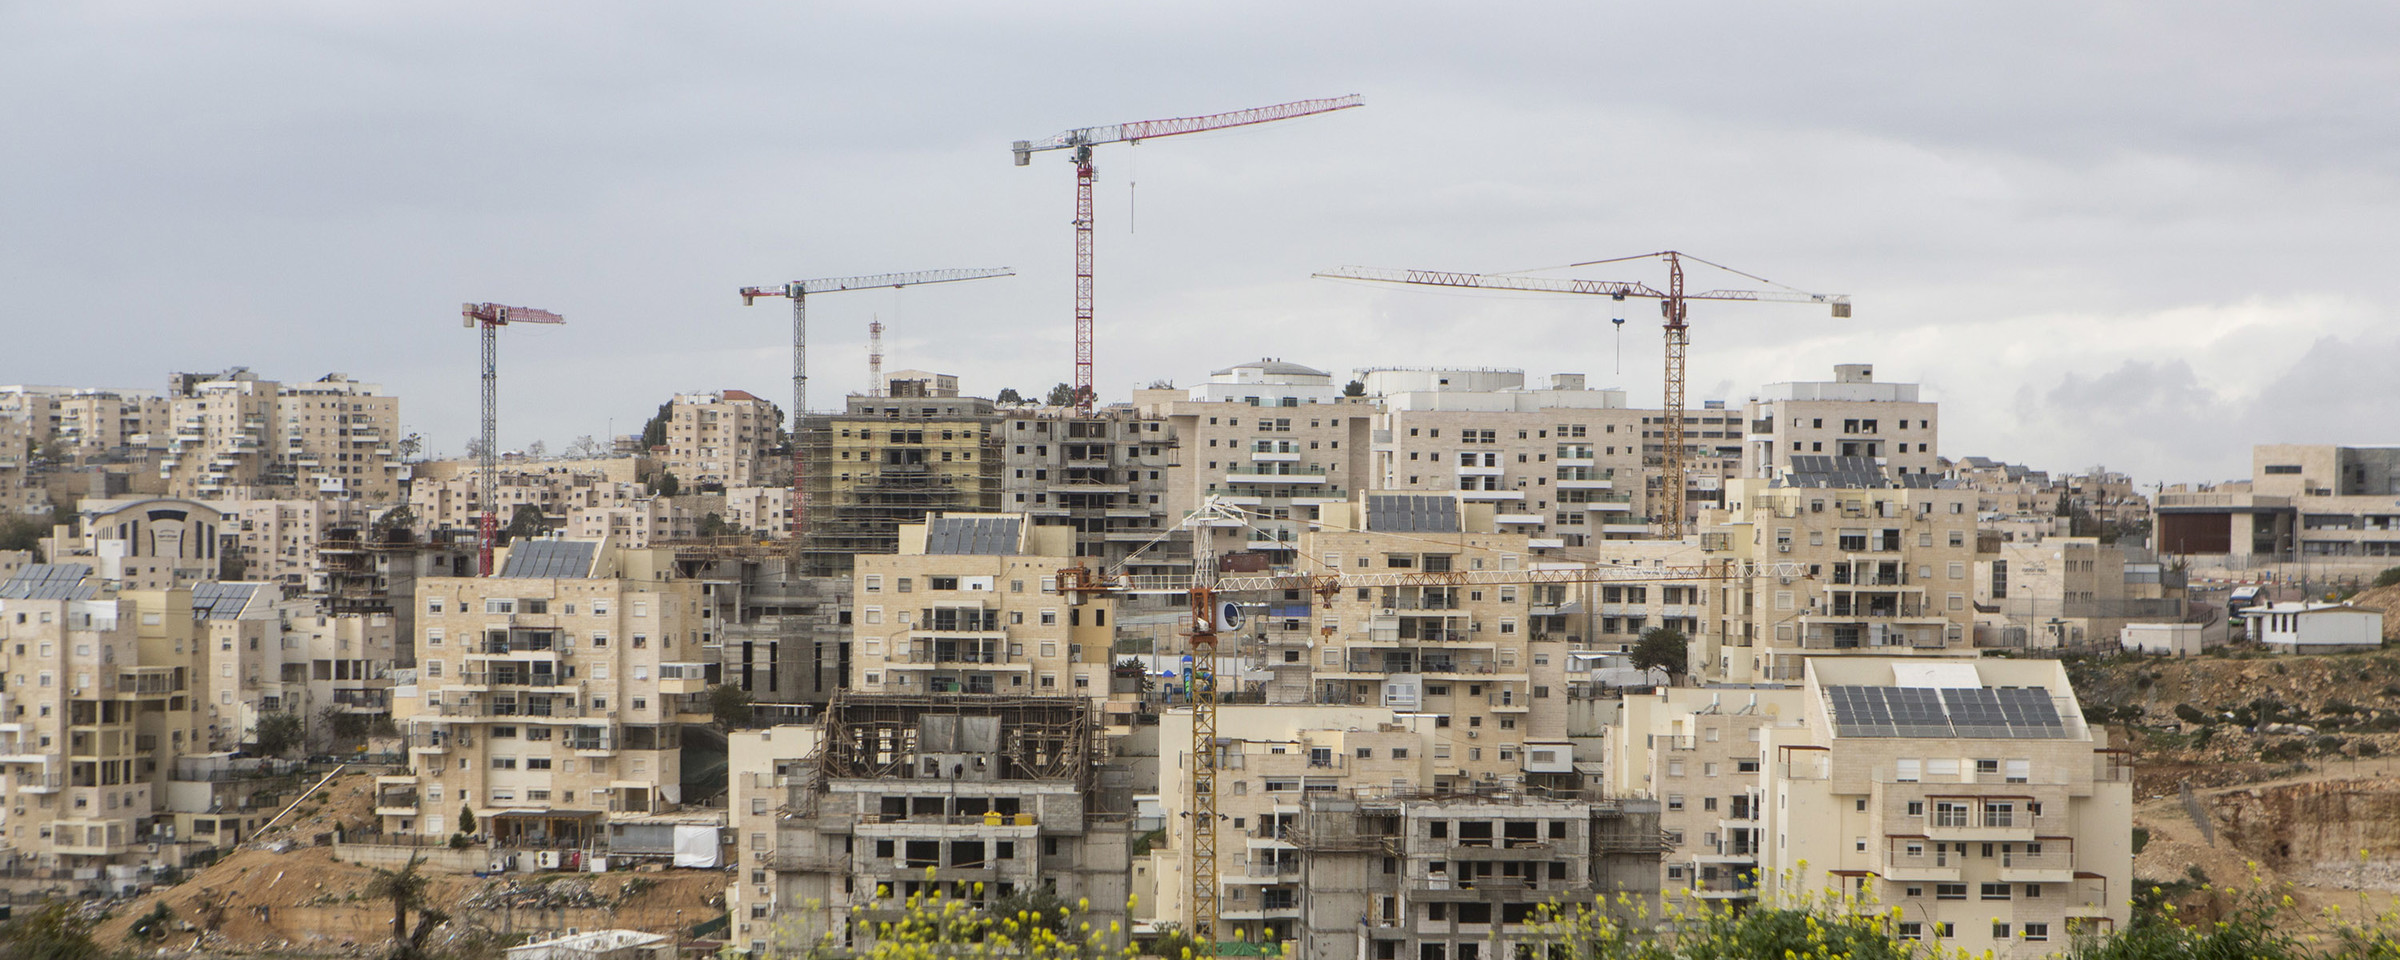 Photo shows construction cranes towering over multi-story buildings in an Israeli settlement